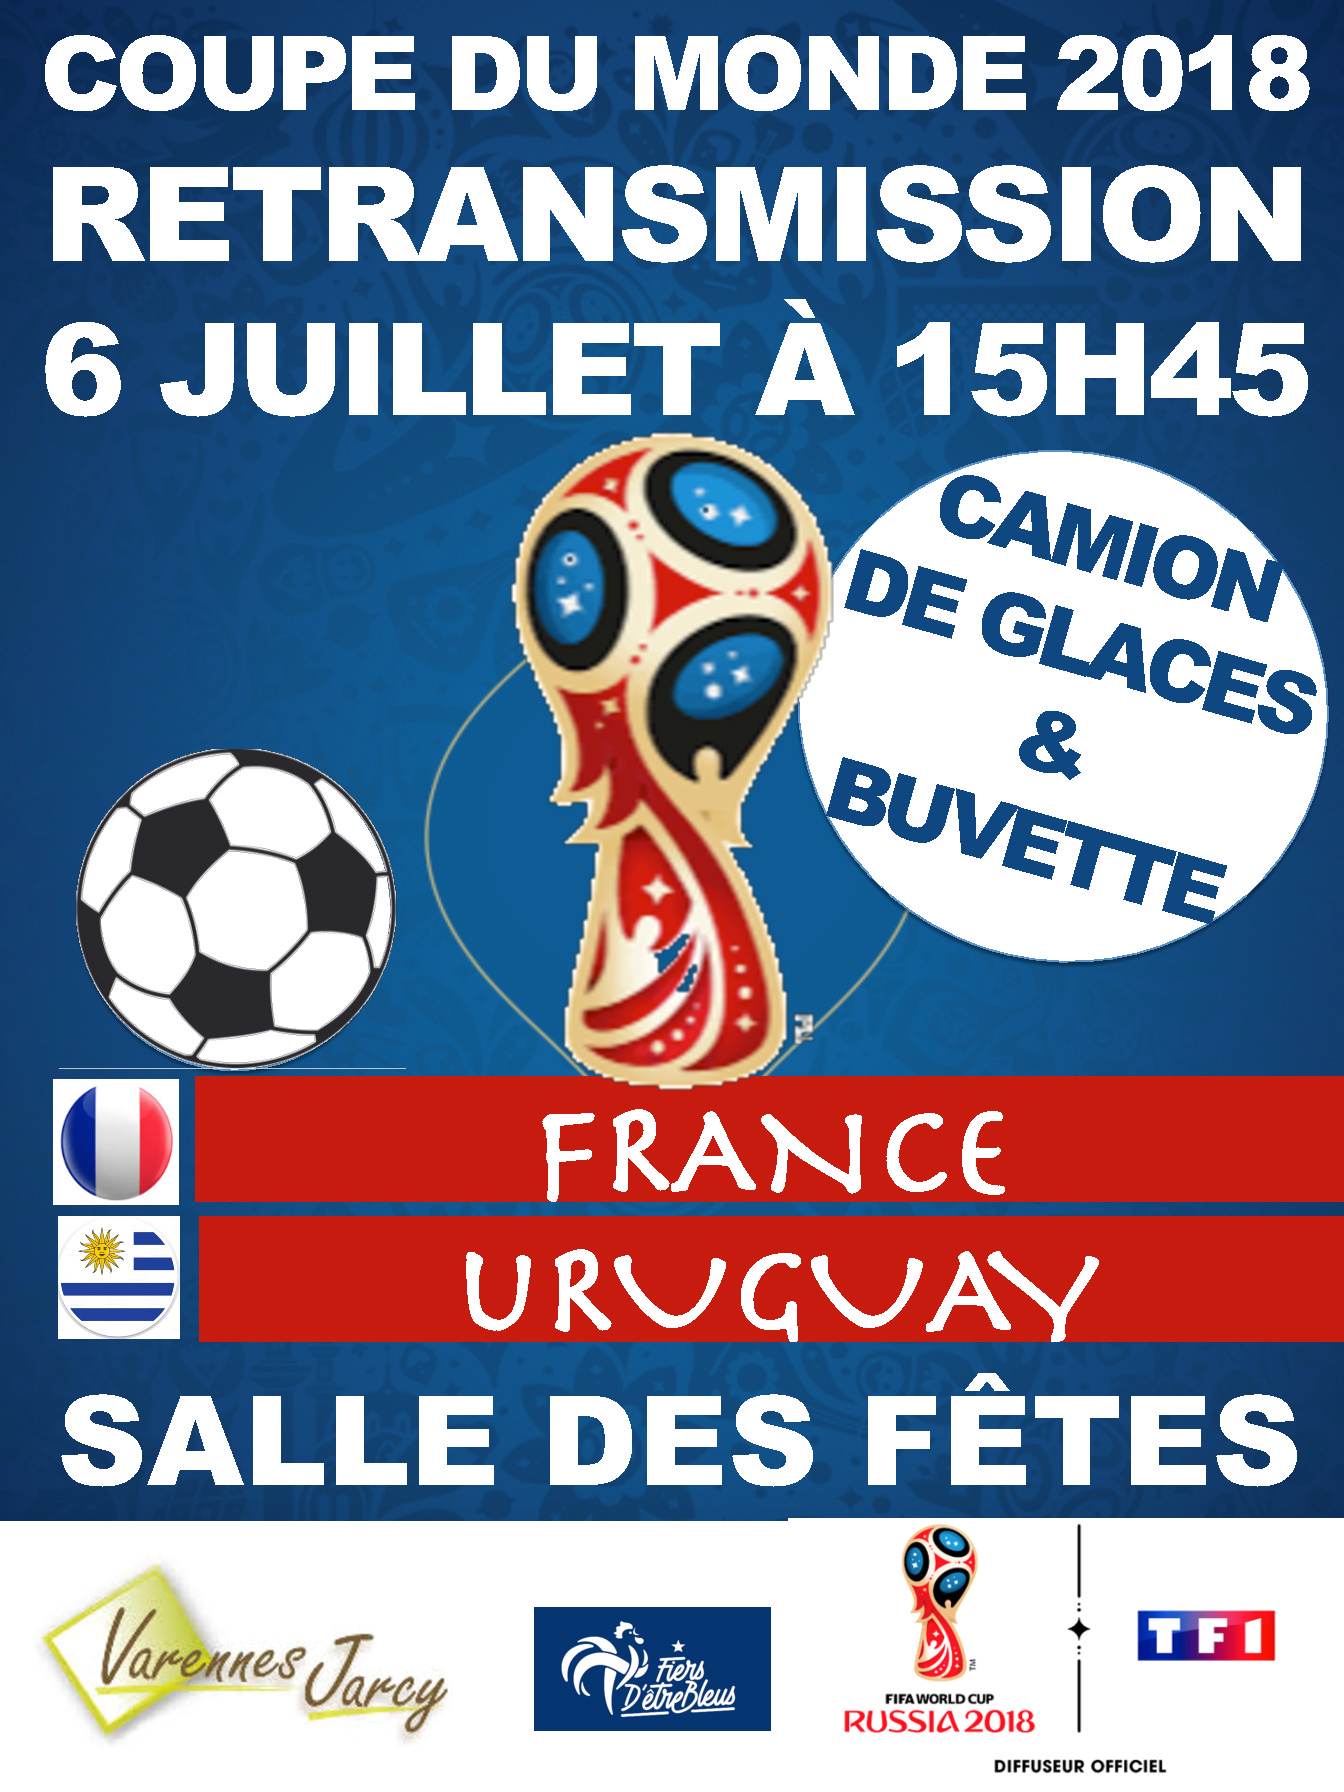 thumbnail of affiche retransmission coupe du monde_6JUILLET